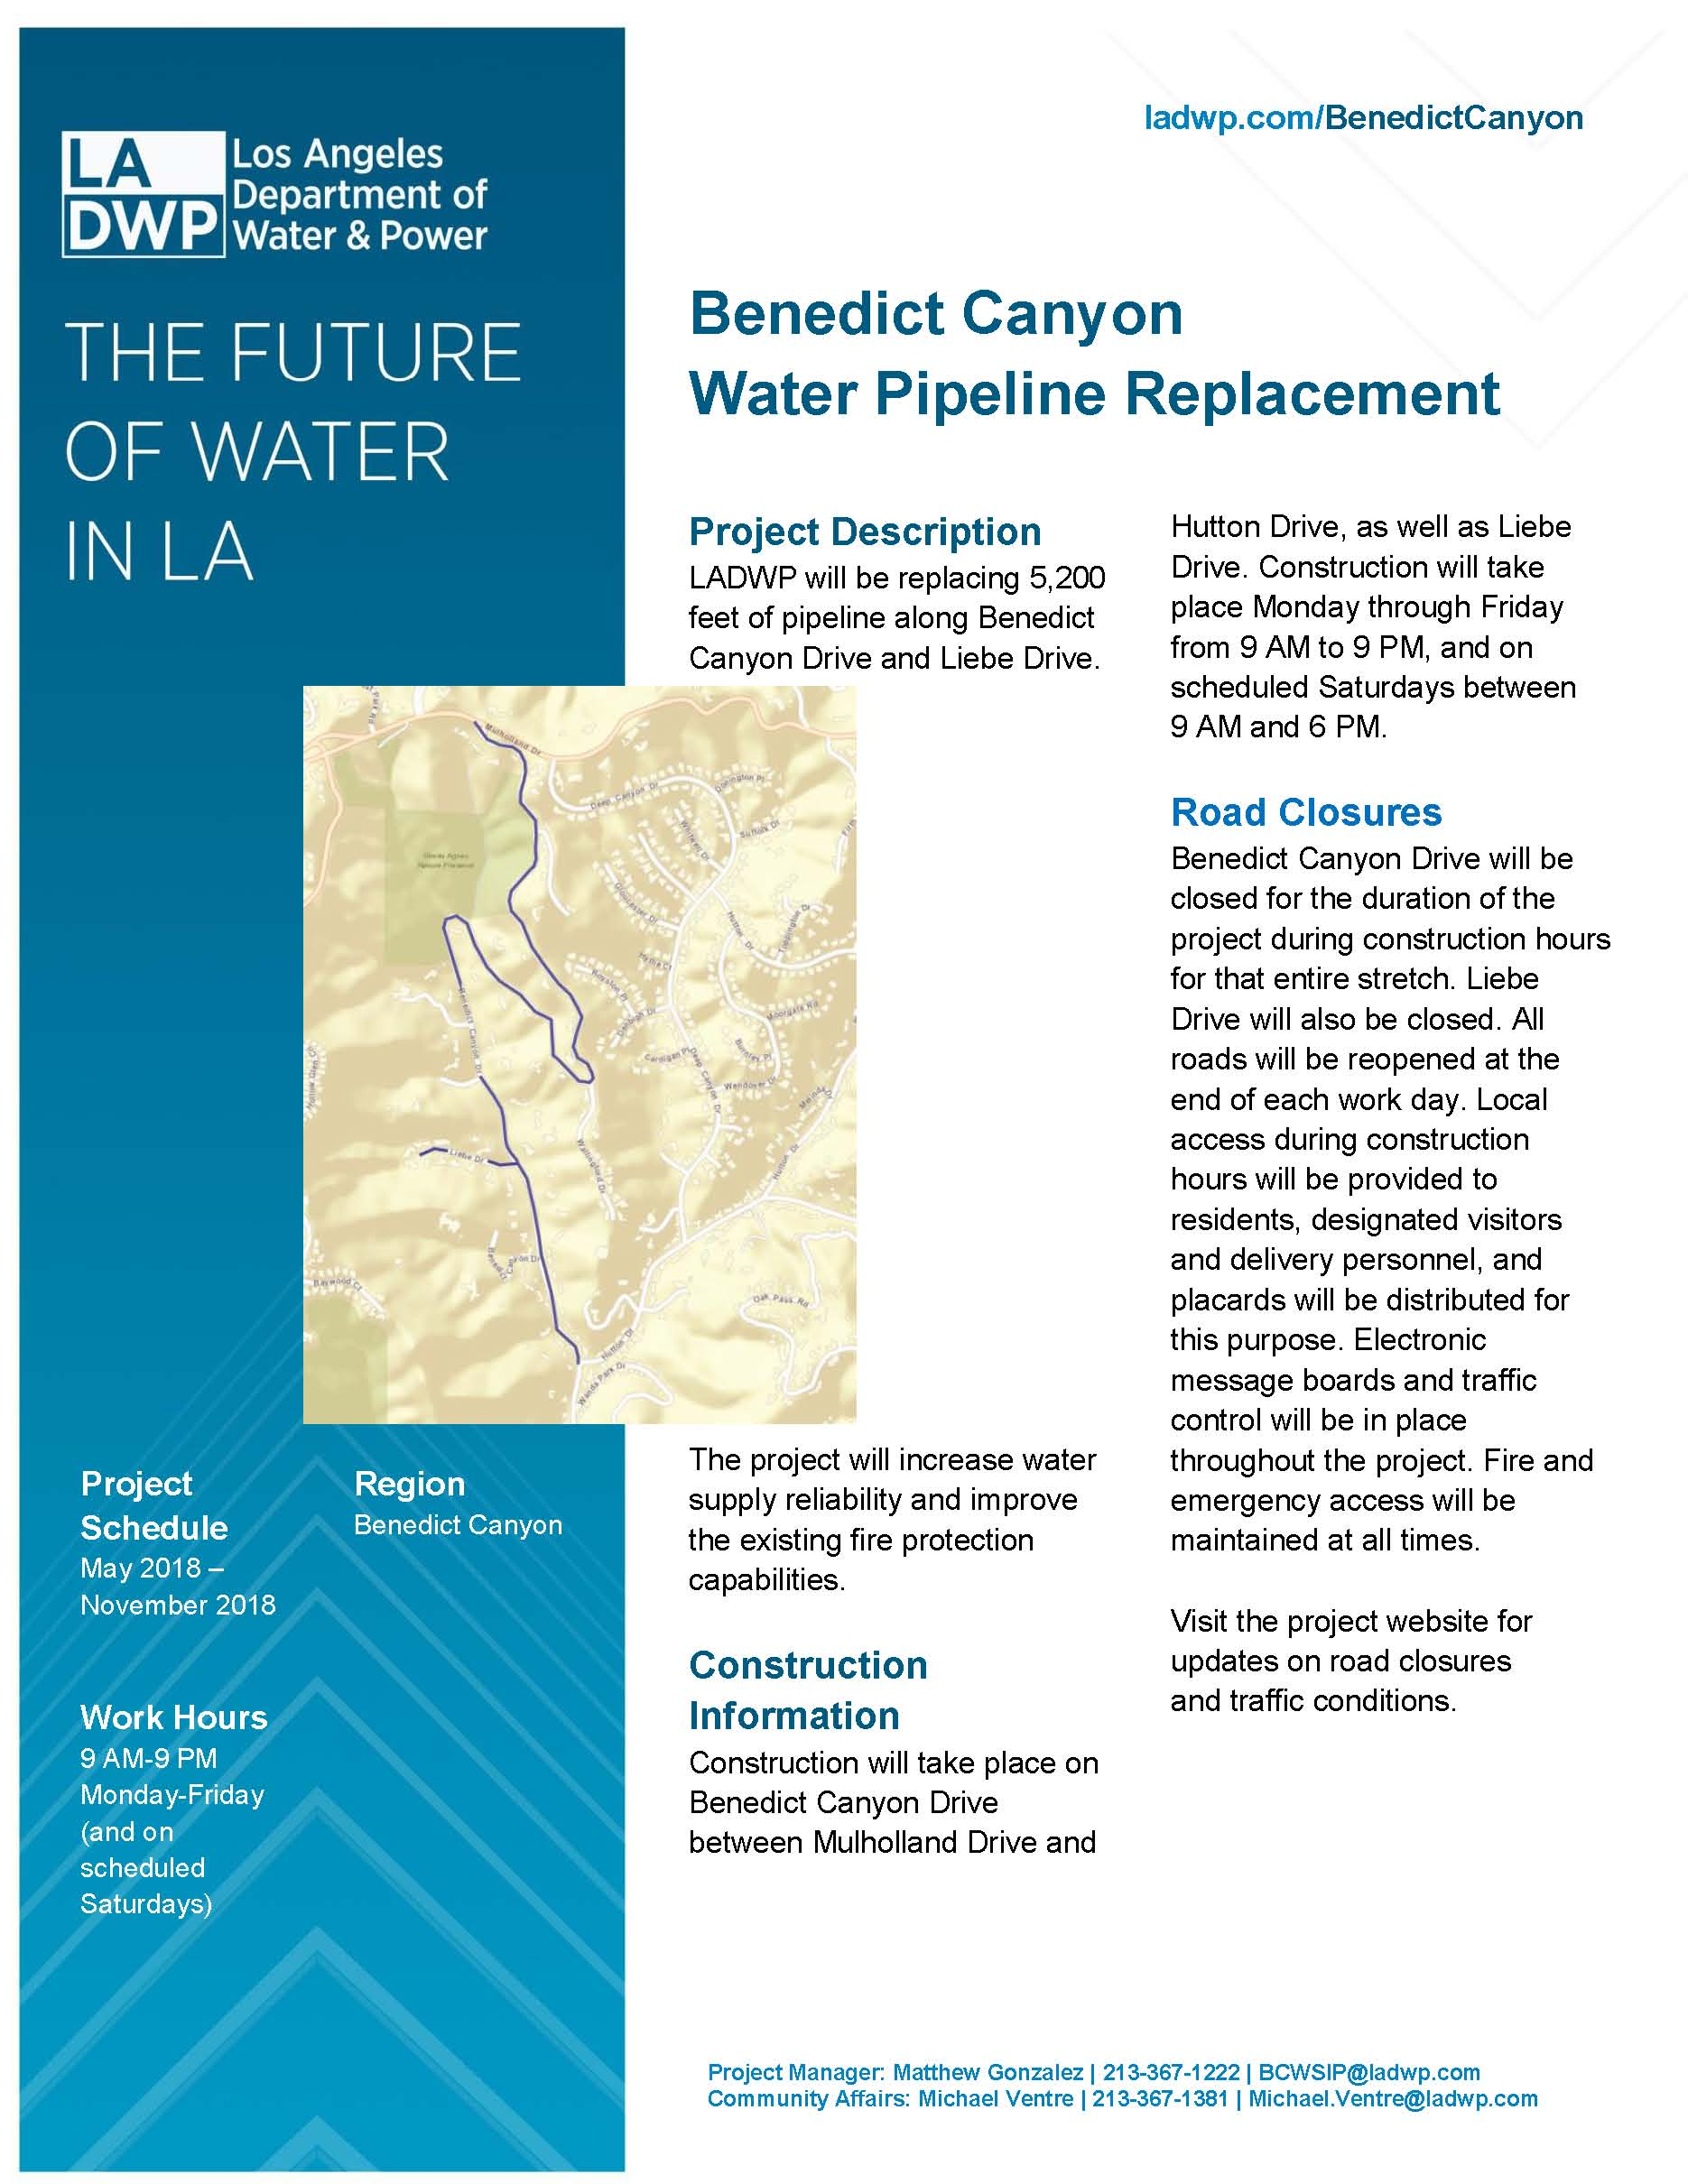 BENEDICT CANYON FACT SHEET (3-28-18).jpg